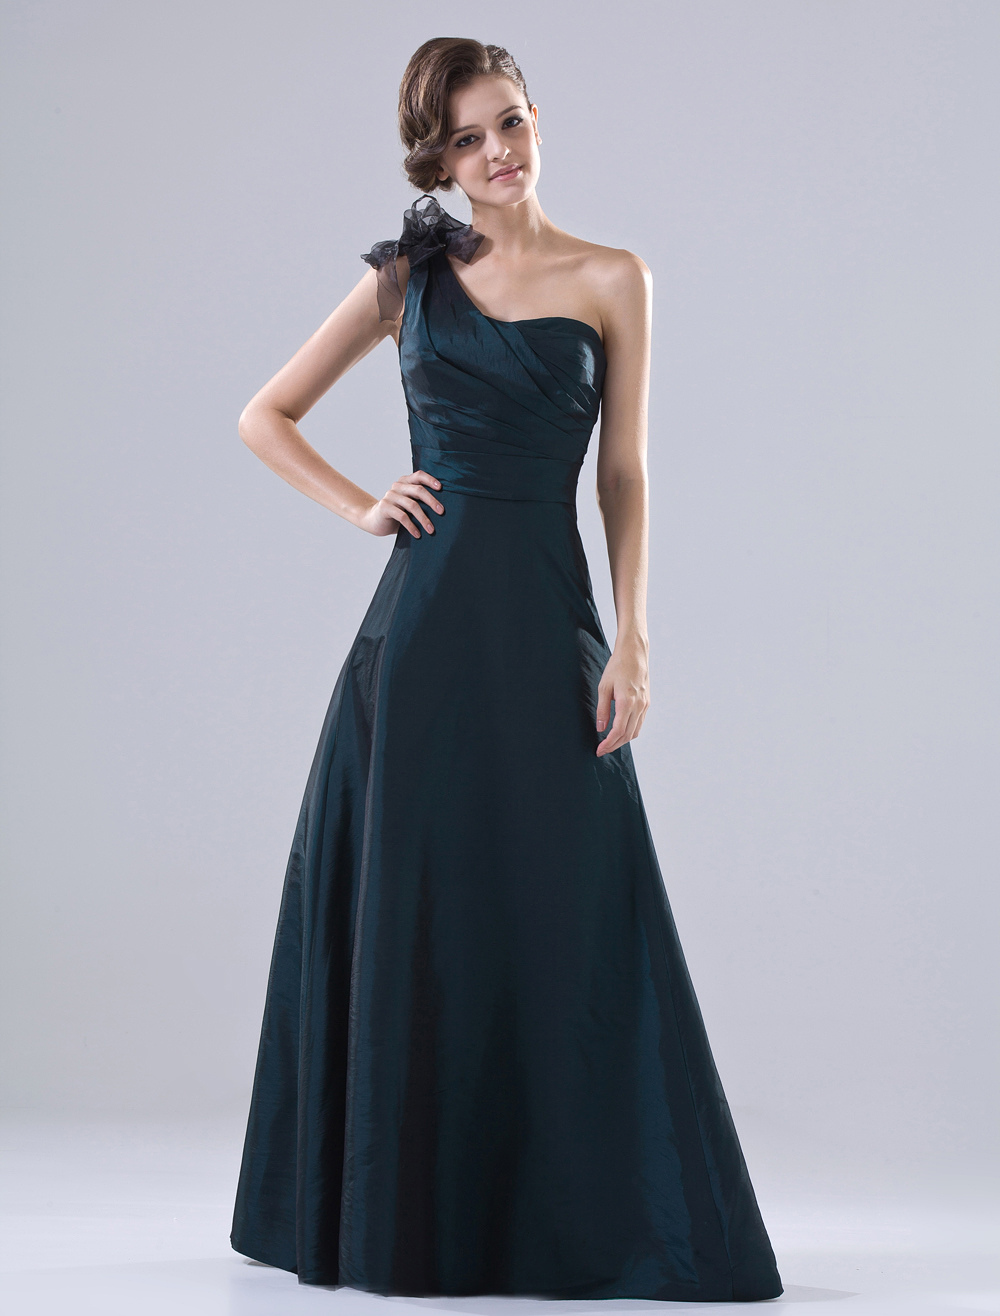 Ink Blue Bridesmaid Dress Taffeta One Shoulder Ribbon A Line Maxi Party Dress